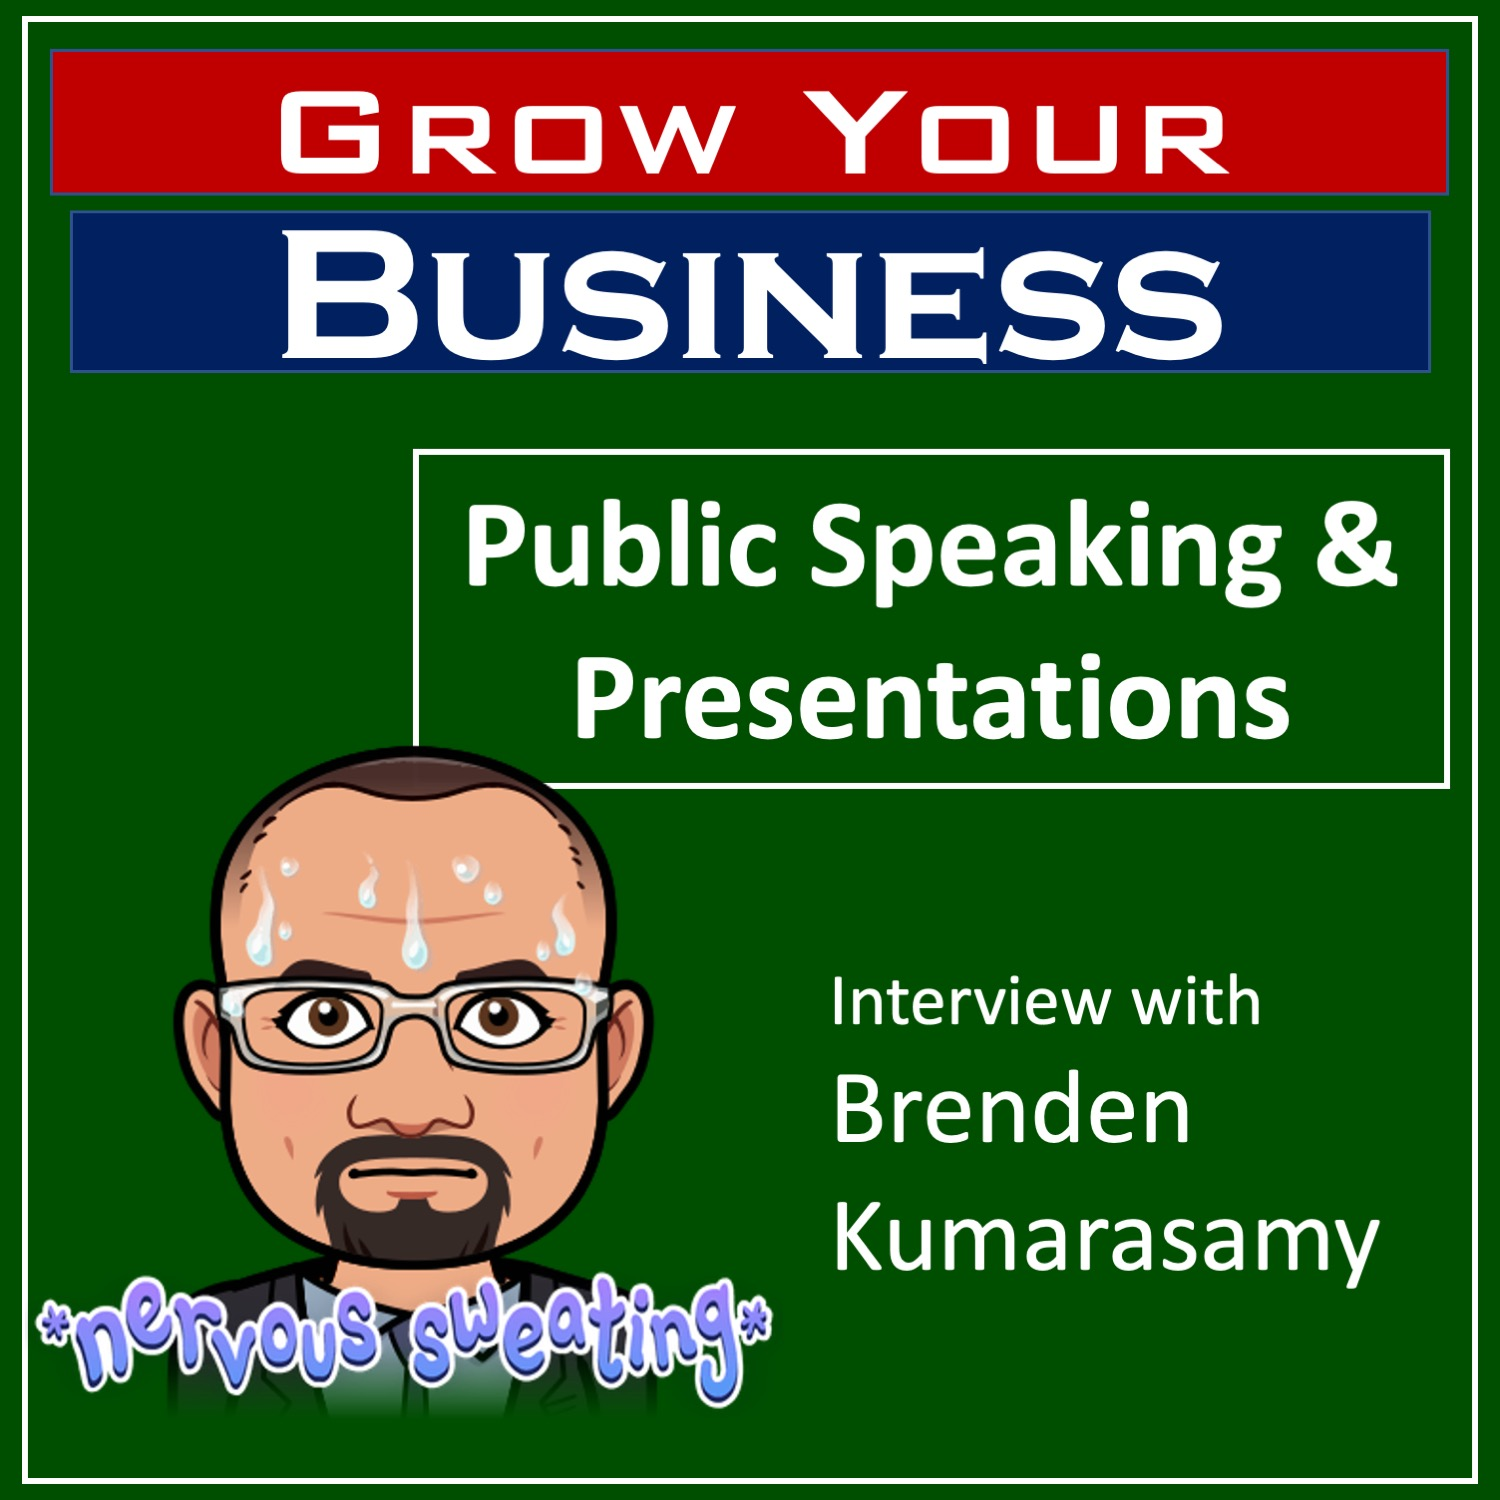 Improving Our Presentation Skills - Public Speaking Tips